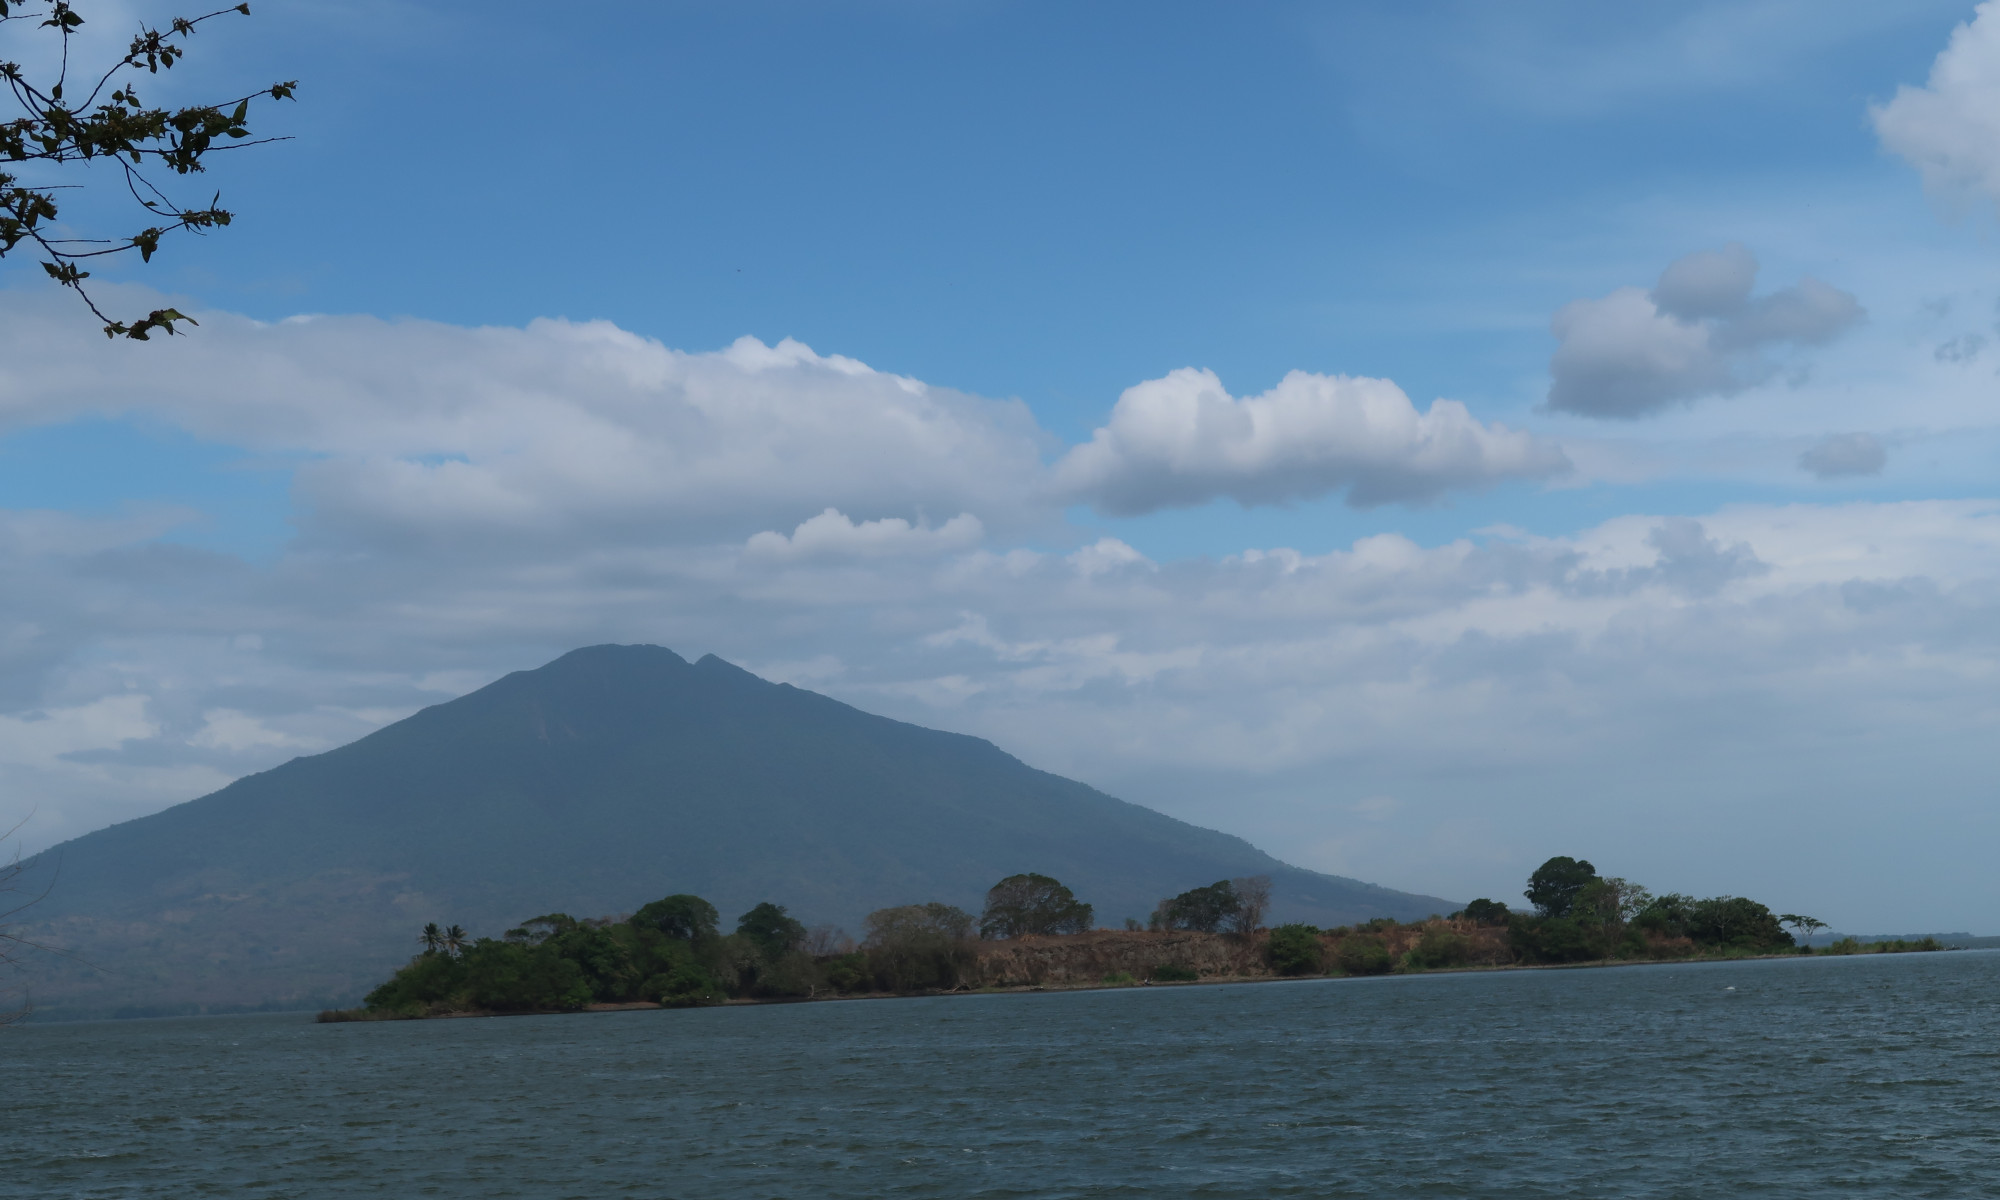 Vulkaninsel Ometepe